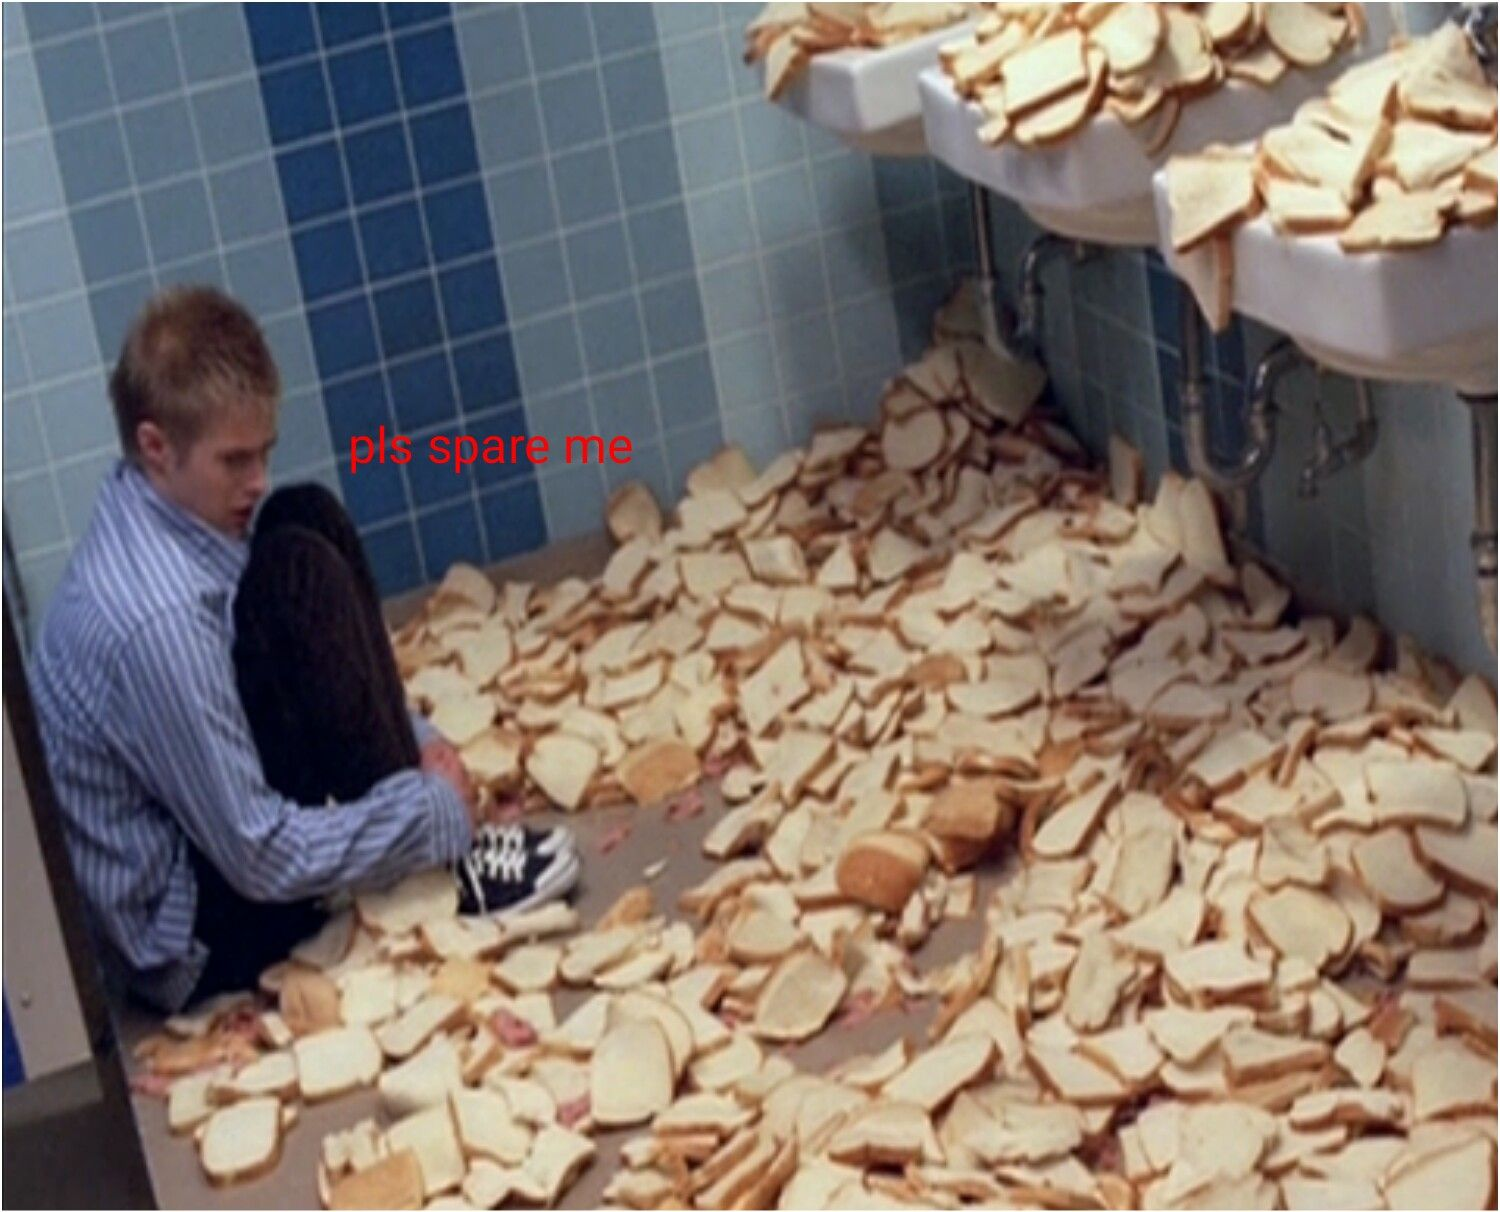 Mfw I hear rumours about a new bread raid